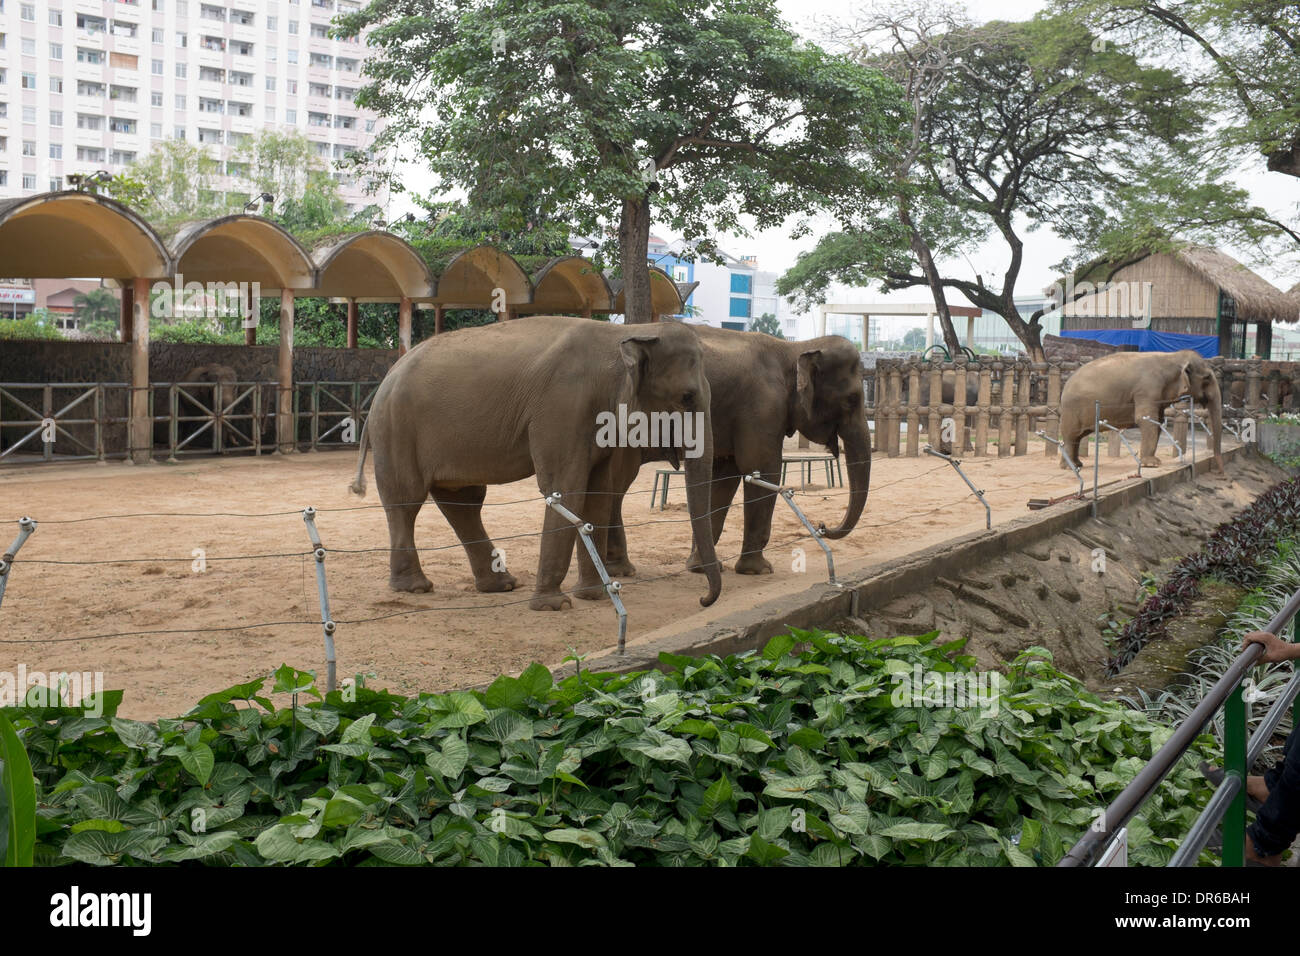 Elephants saigon zoo and botanical garden ho chi minh city Garden city zoo